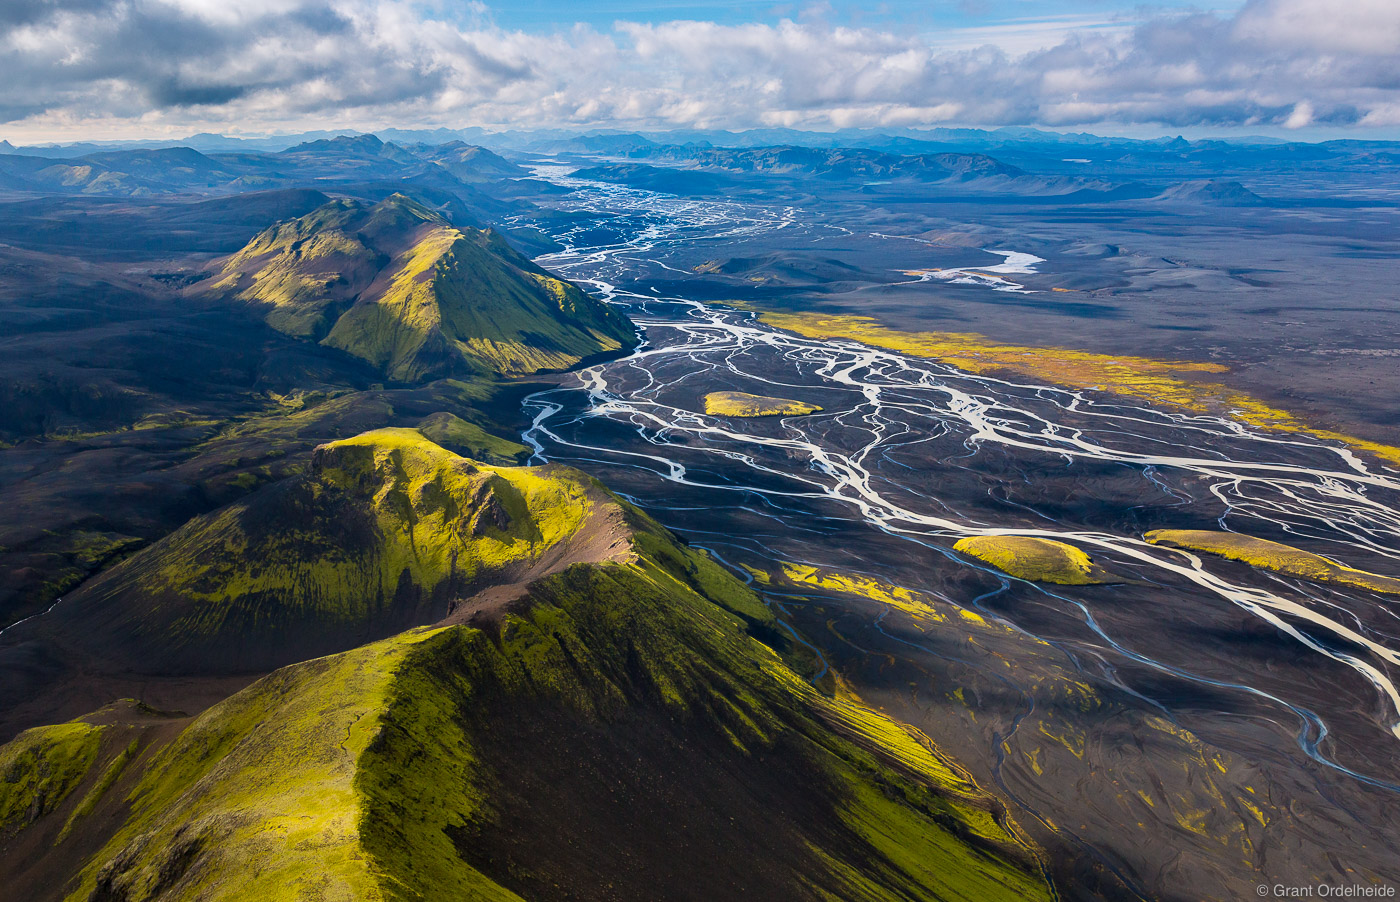 river, deltas, southern, iceland, aerial, view, winding, green, covered, mountains,, photo